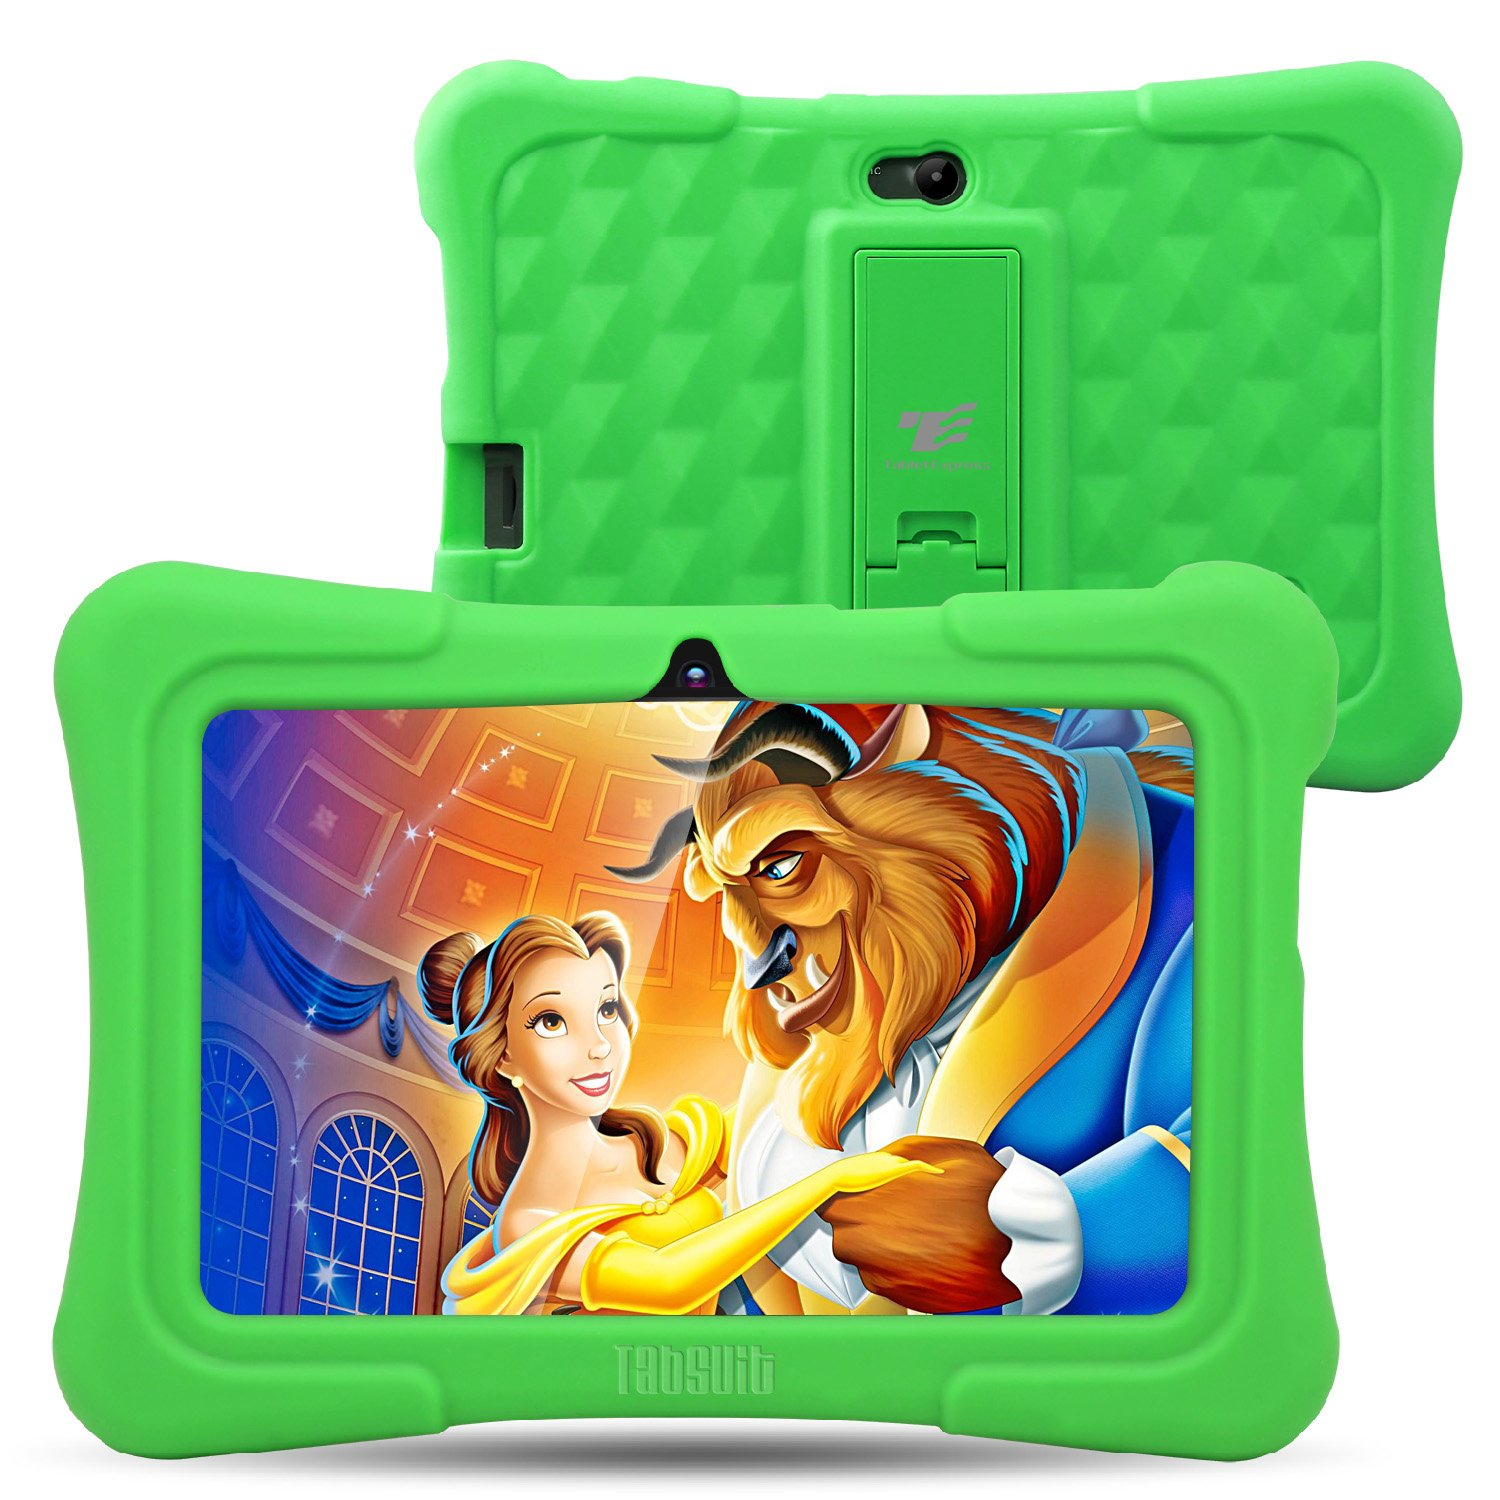 [Upgraded] Dragon Touch Y88X Plus Kids Tablet, 7 inch Display, Kidoz Pre-Installed with Disney Content (More Than $80 Value) (Android 7.1 OS) (C.green)